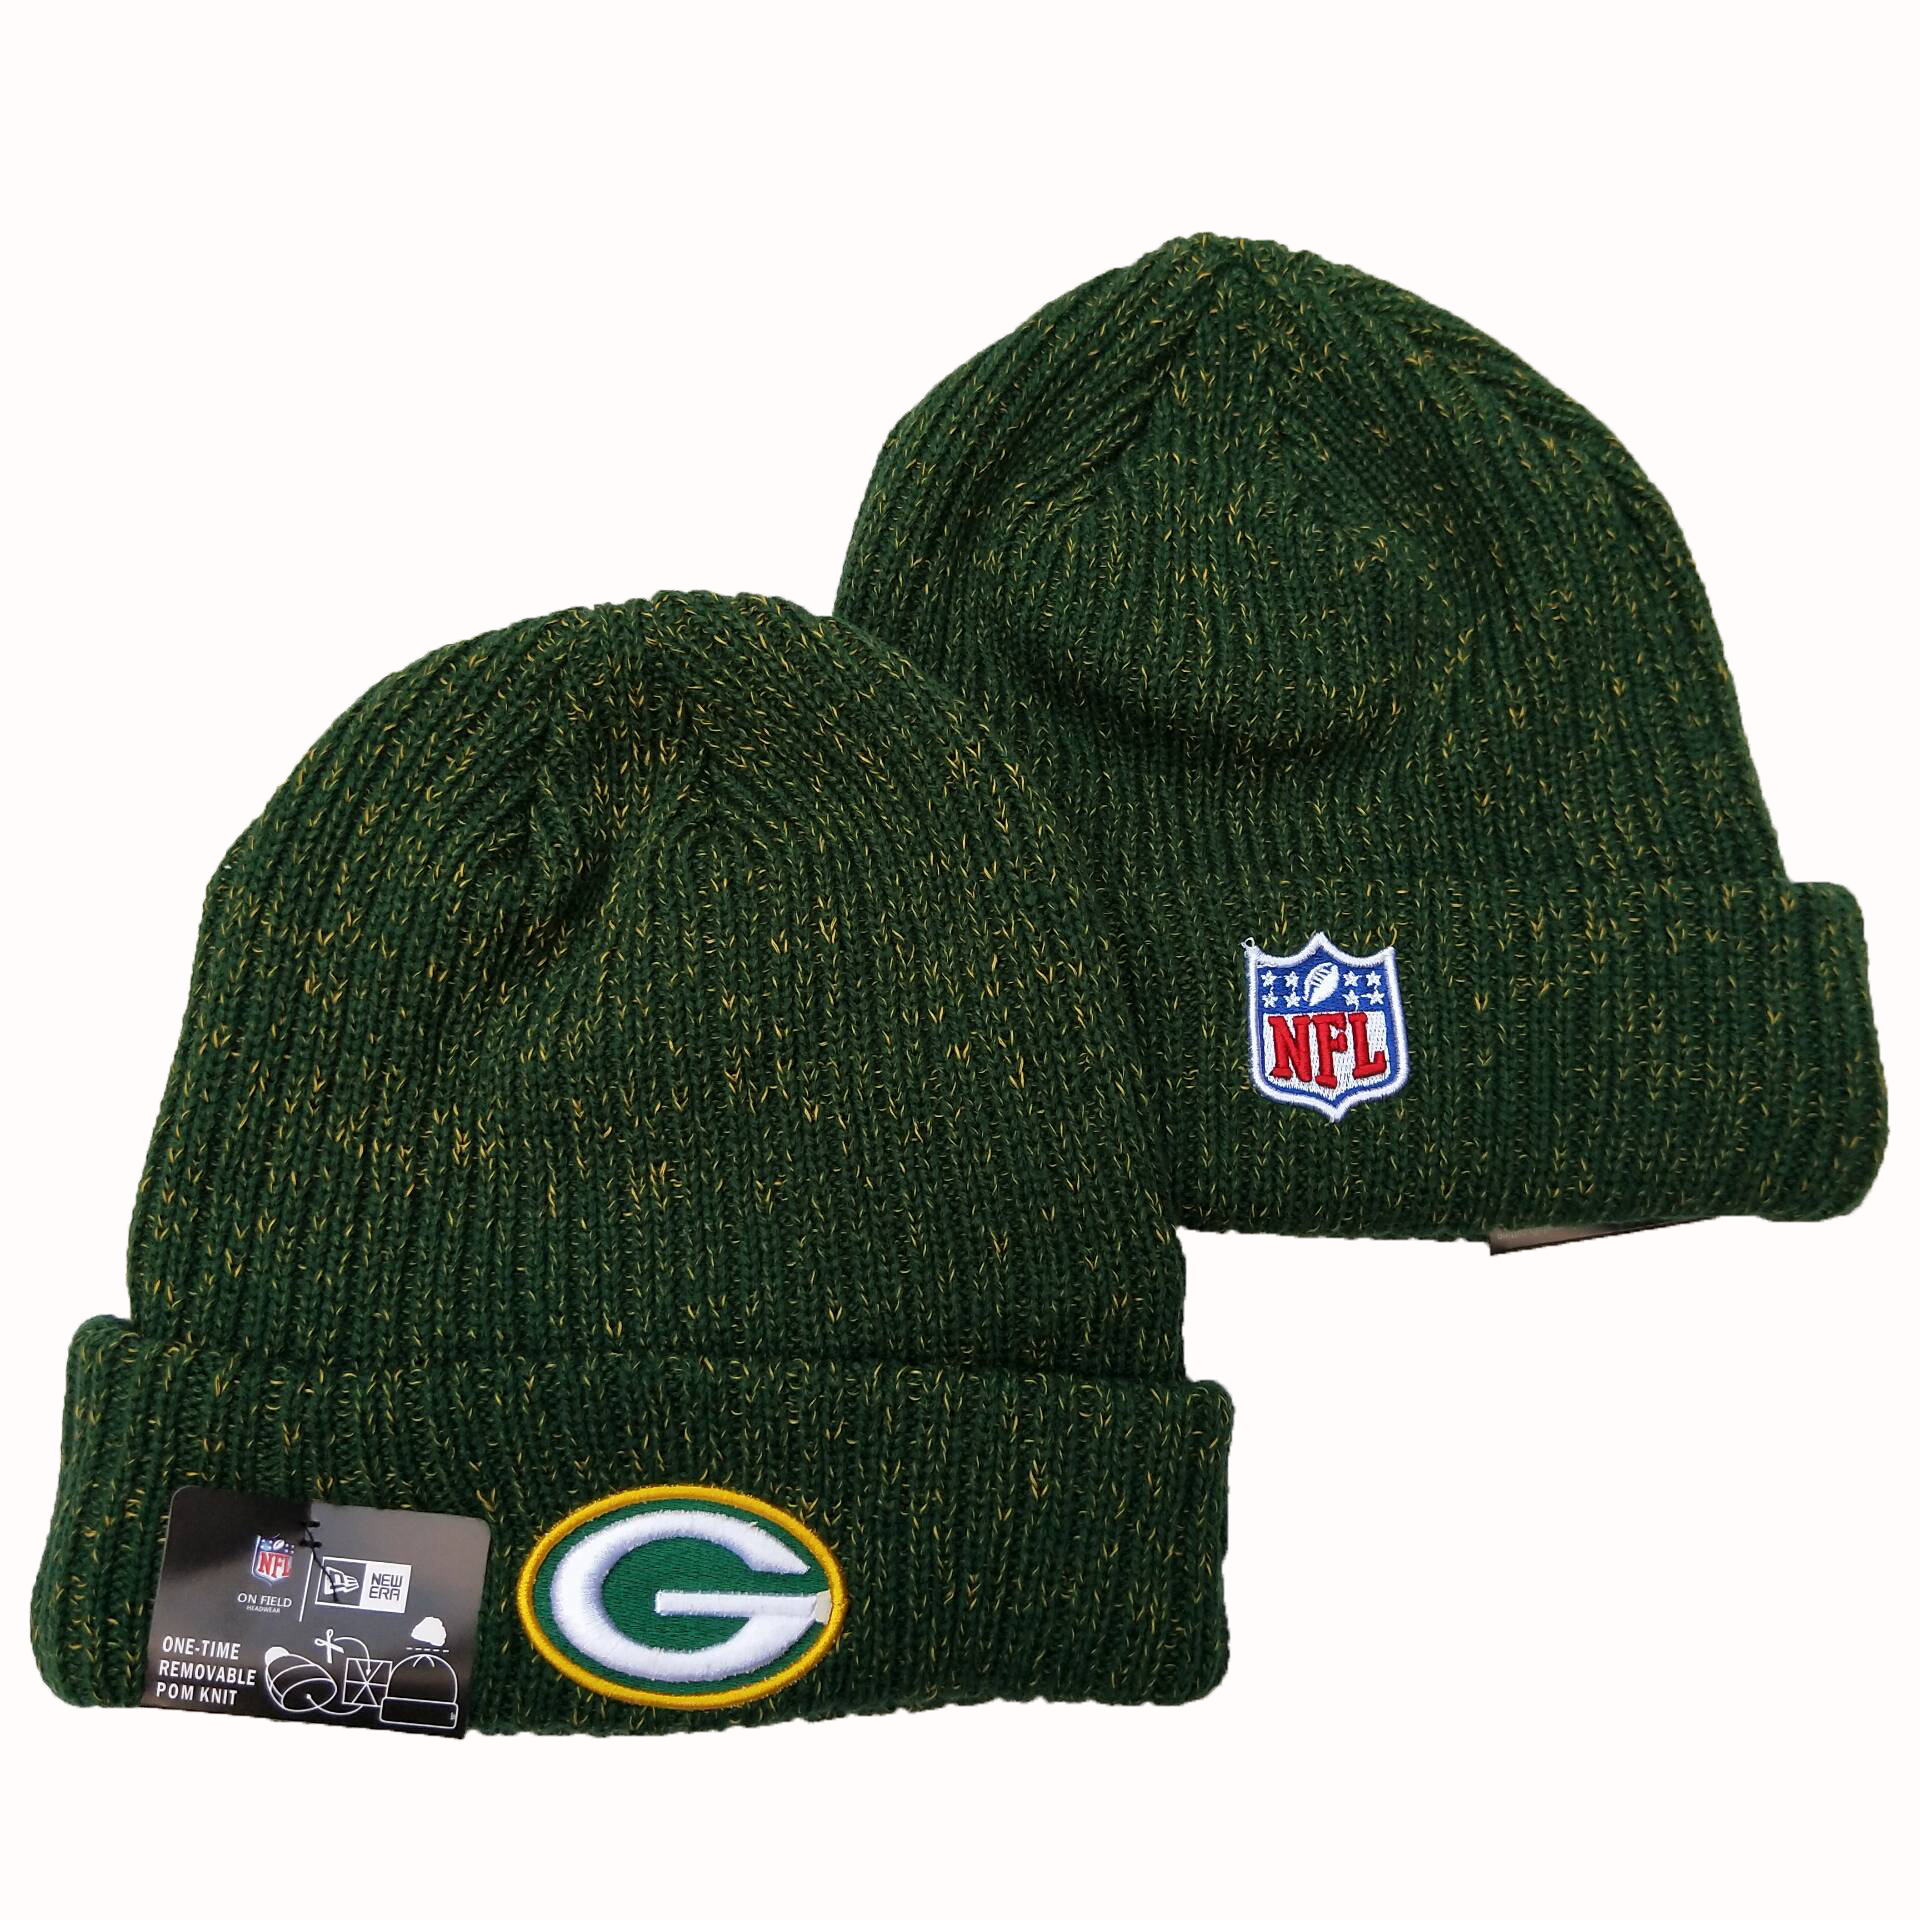 NFL Green Bay Packers New Era 2019 Knit Hats 051